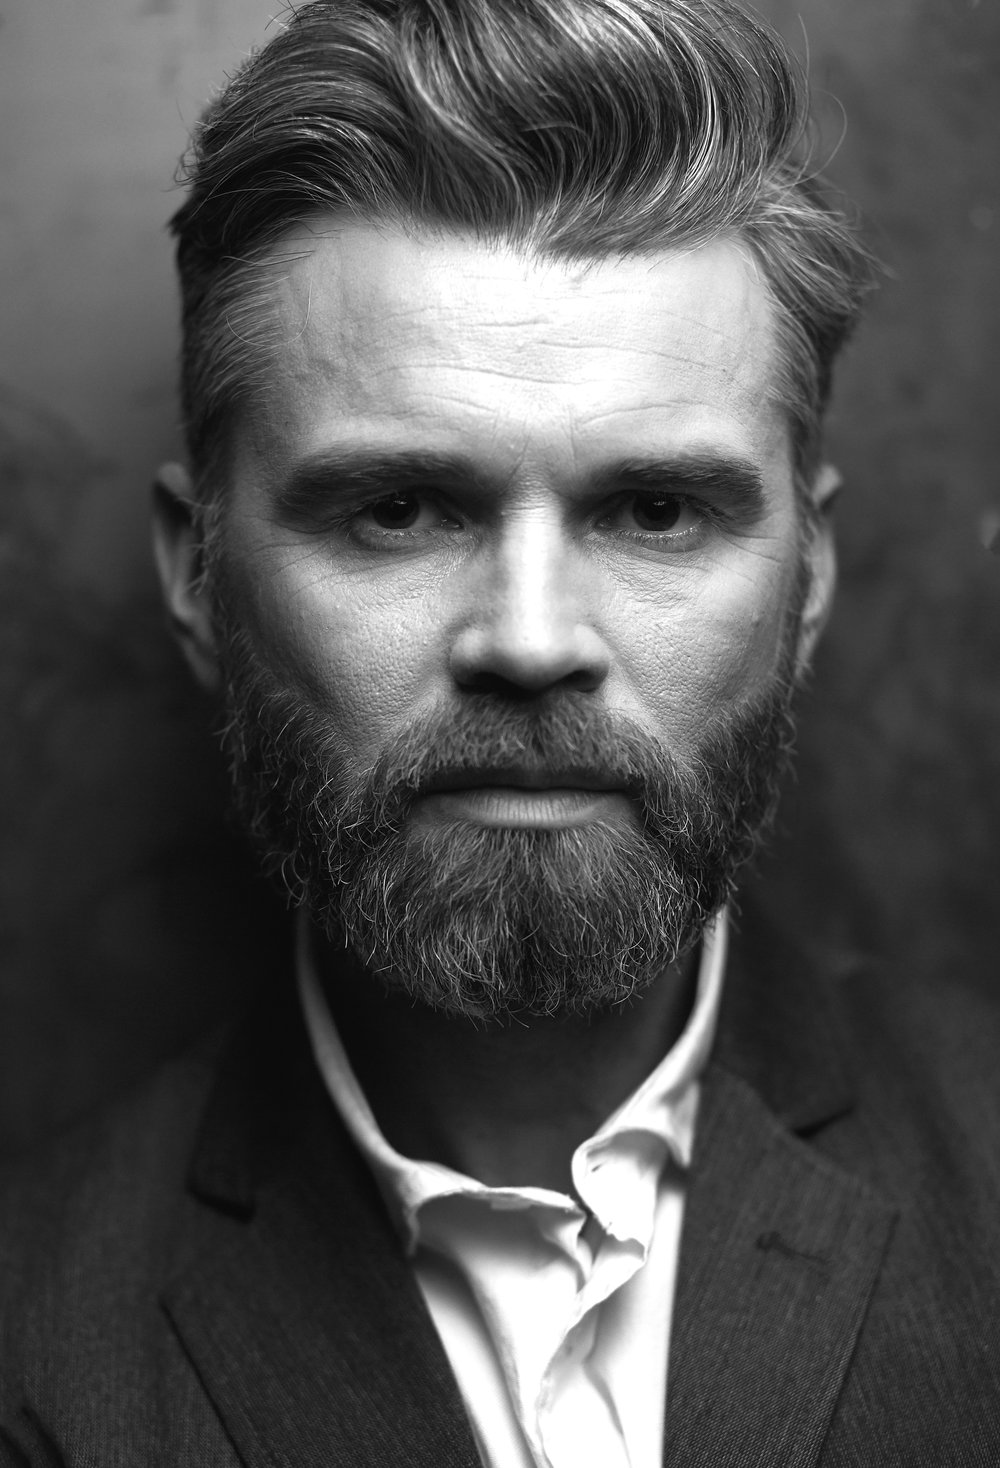 Closeup portrait of handsome beautiful serious man with beard, wearing white shirt and black waistcoat, posing in studio on dark grey background in black and white